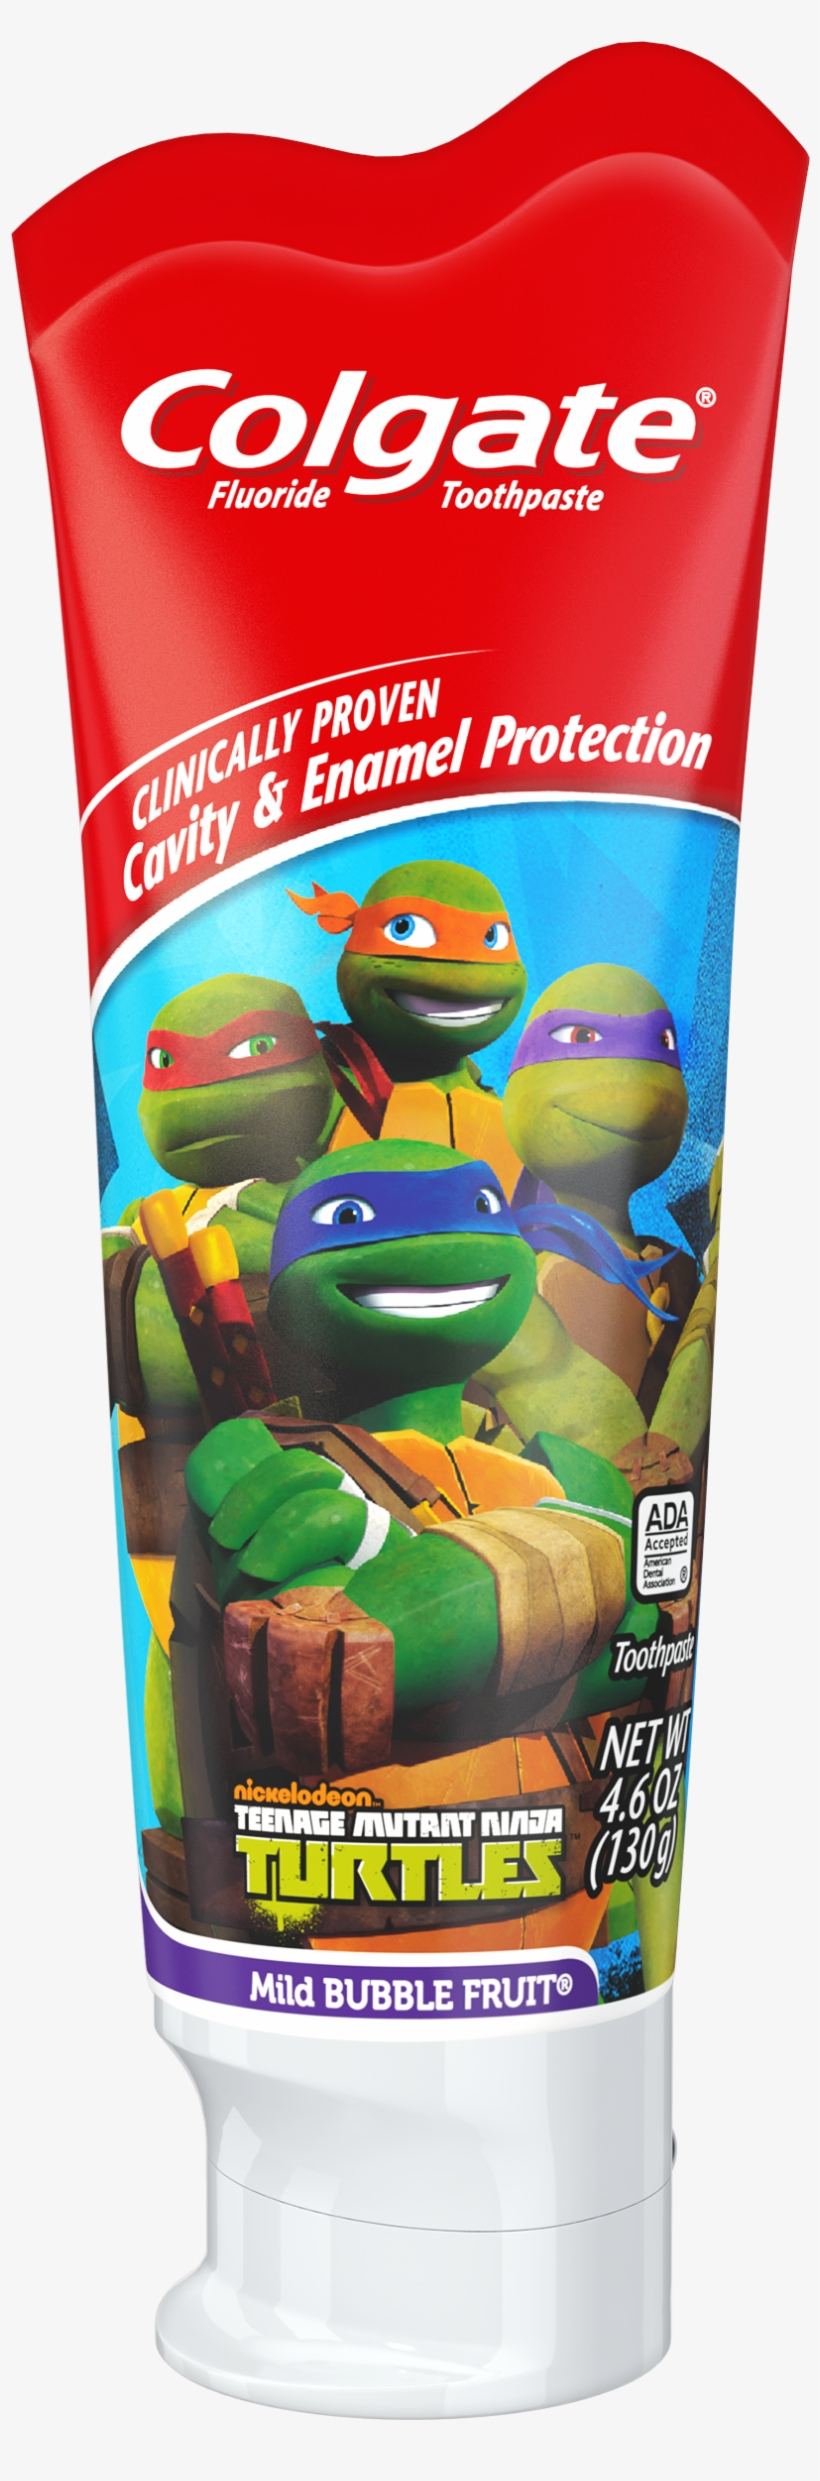 Colgate Kids Fluoride Toothpaste, Teenage Mutant Ninja - Colgate Ninja Turtles Toothpaste - 4.6 Oz Tube, transparent png #1052361